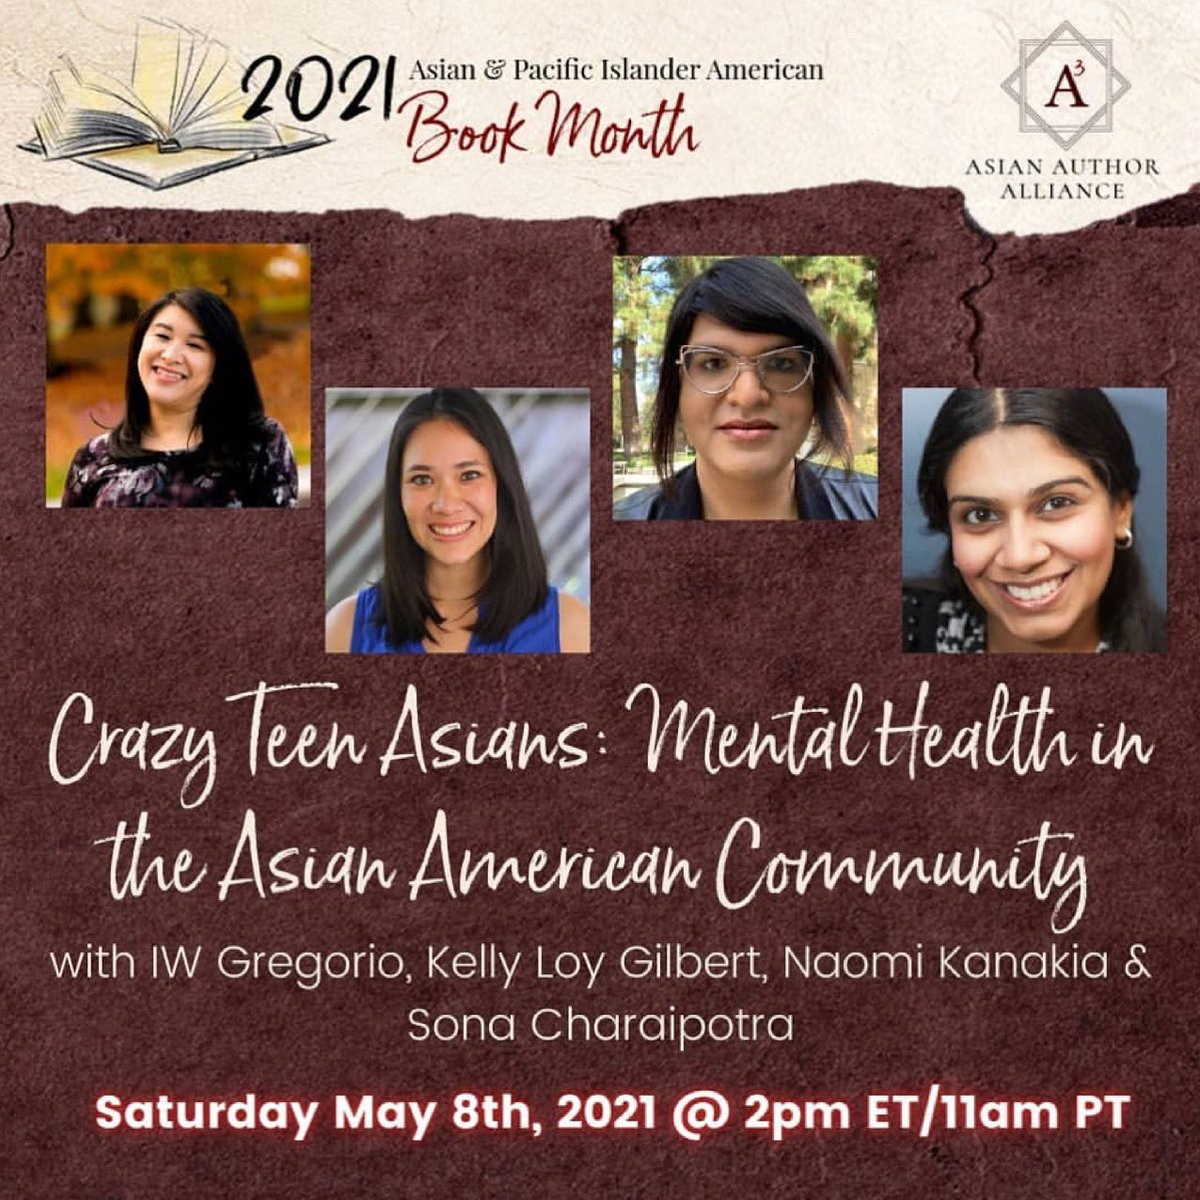 Today, 𝗦𝗮𝘁𝘂𝗿𝗱𝗮𝘆, at 𝟮𝗽𝗺 𝗘𝗧   @Asian_Authors presents a panel on #AsAmAF #MentalHealthMatters panel with @kellyloygilbert @iwgregorio @rhkanakia And me!  YouTube link: https://t.co/tBspKjArzv  #authorlife #Asianauthors #asianamericanheritagemonth  #APAHM  https://t.co/cUthPXbZh5